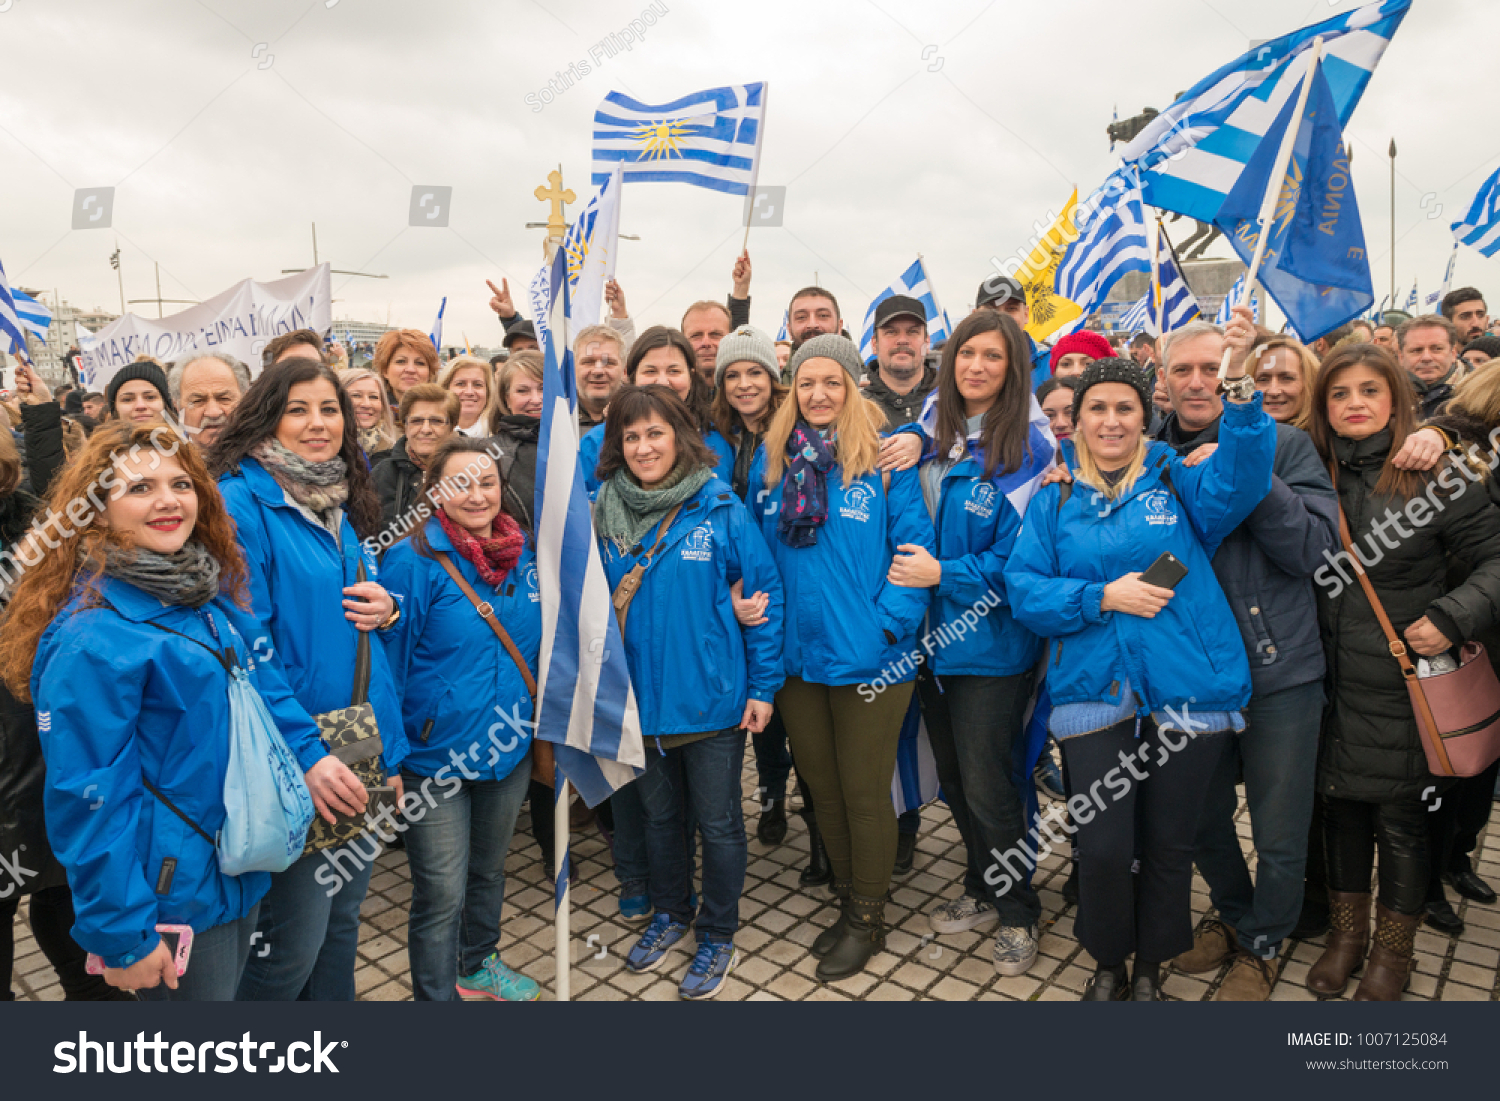 thessaloniki greece 01212018 unknown greek people stock photo edit